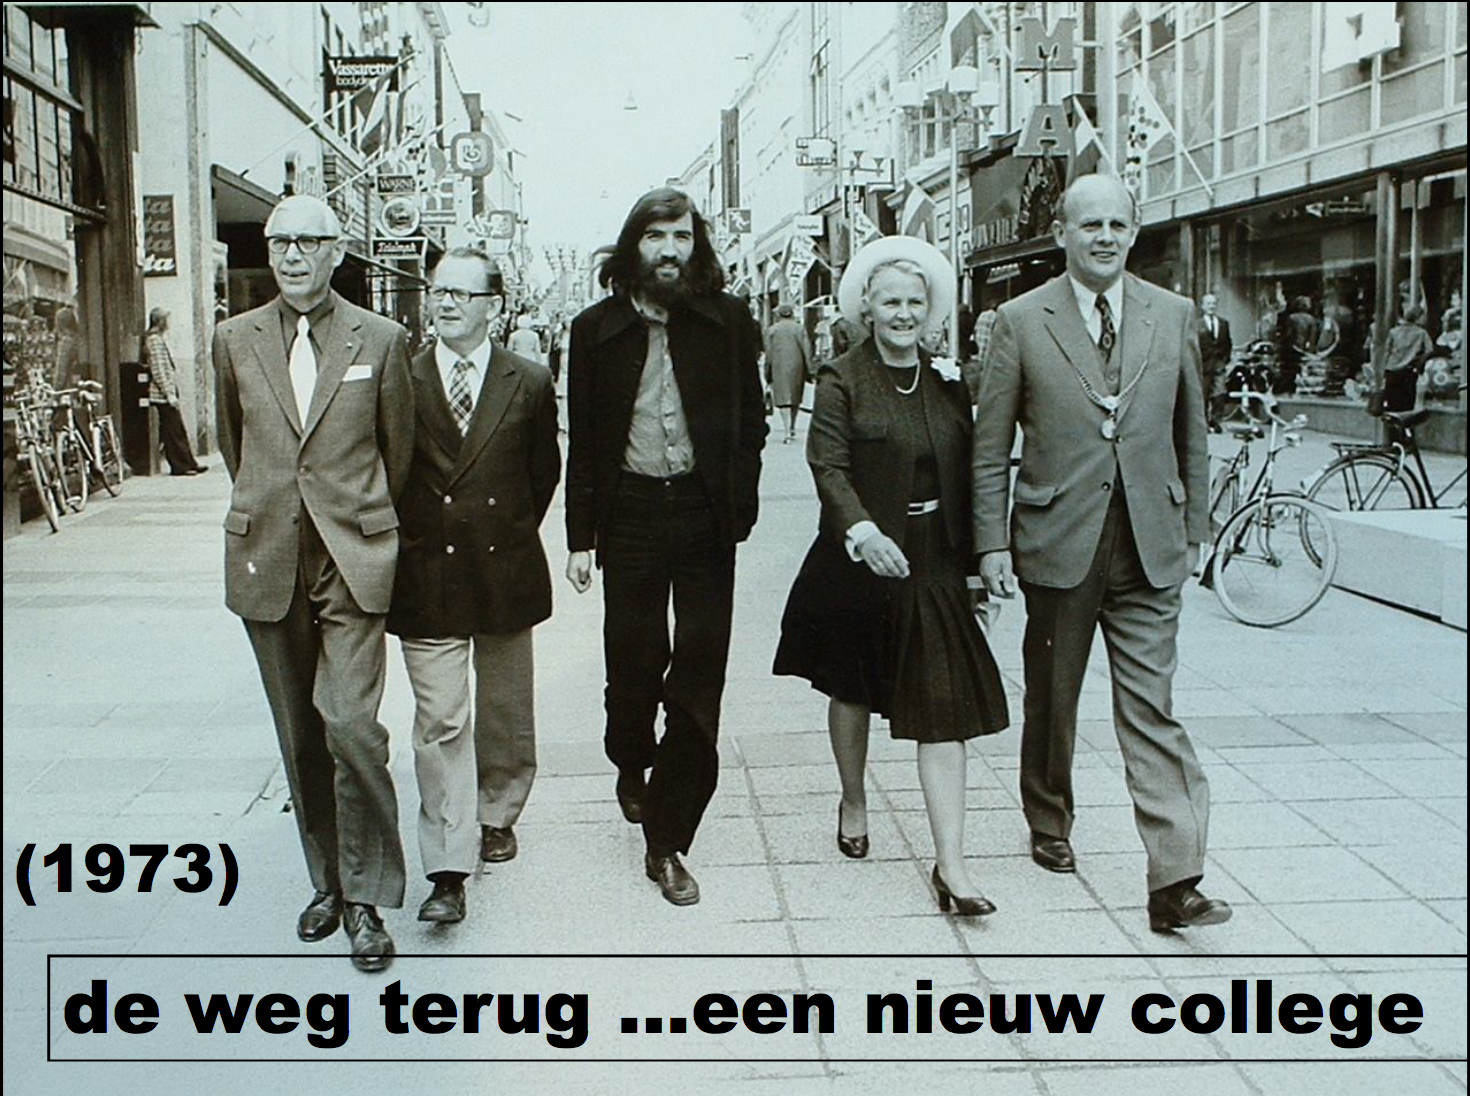 PvDA party members, with Van Den Berg at center.  Image courtesy of Karsijns and Schilt, 2003